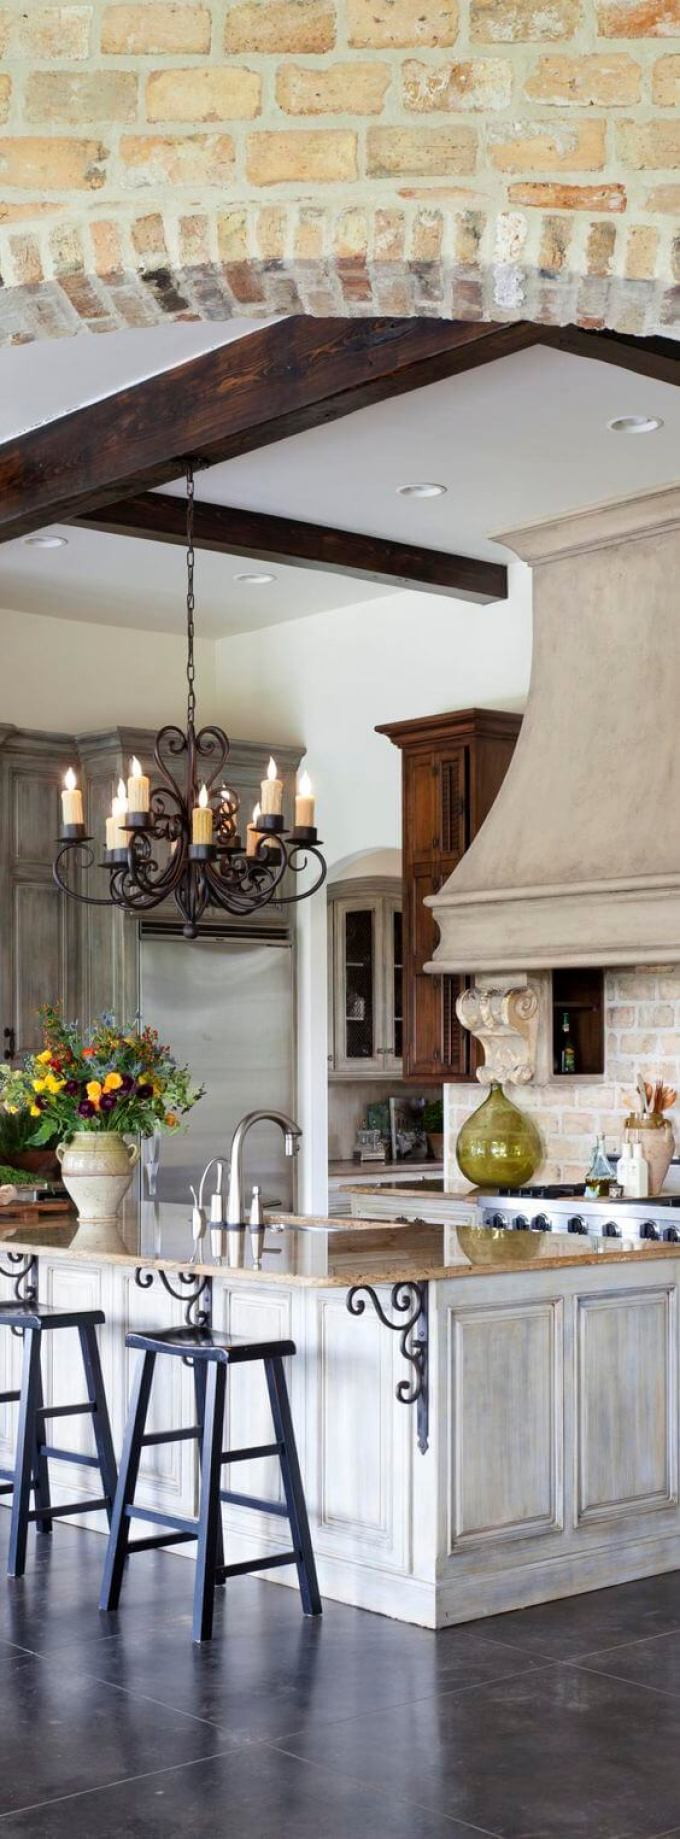 French Country Decor Fancy Kitchen with Chandeliers - Harppost.com